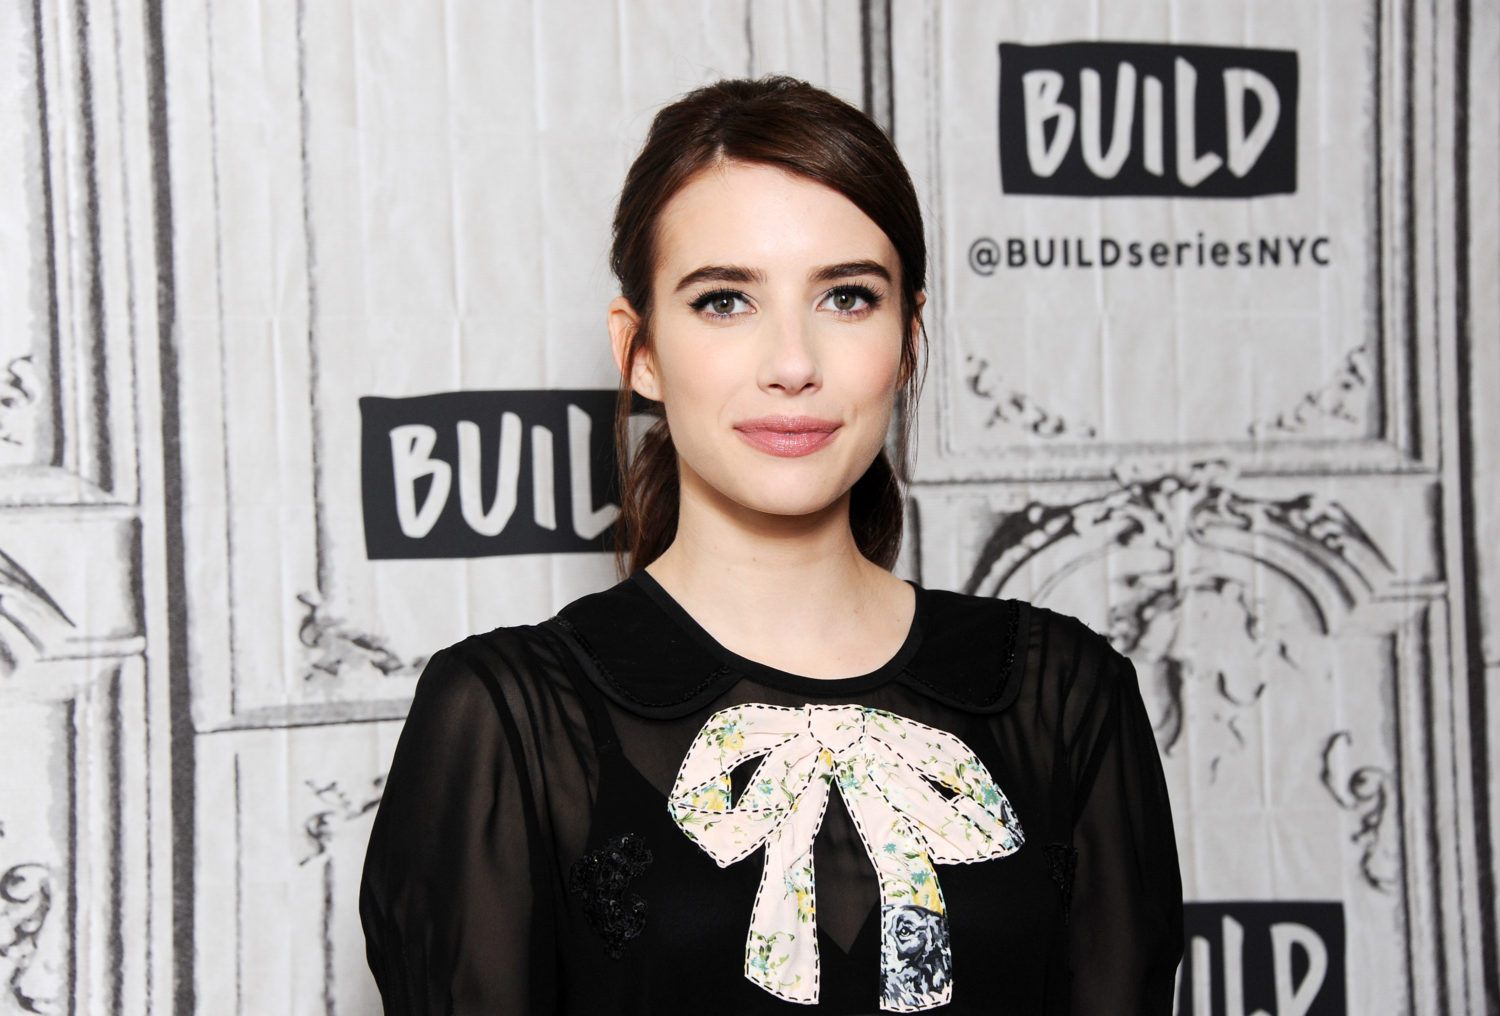 Emma Roberts hopes she has to shave her head for a role one day, and that would be so badass